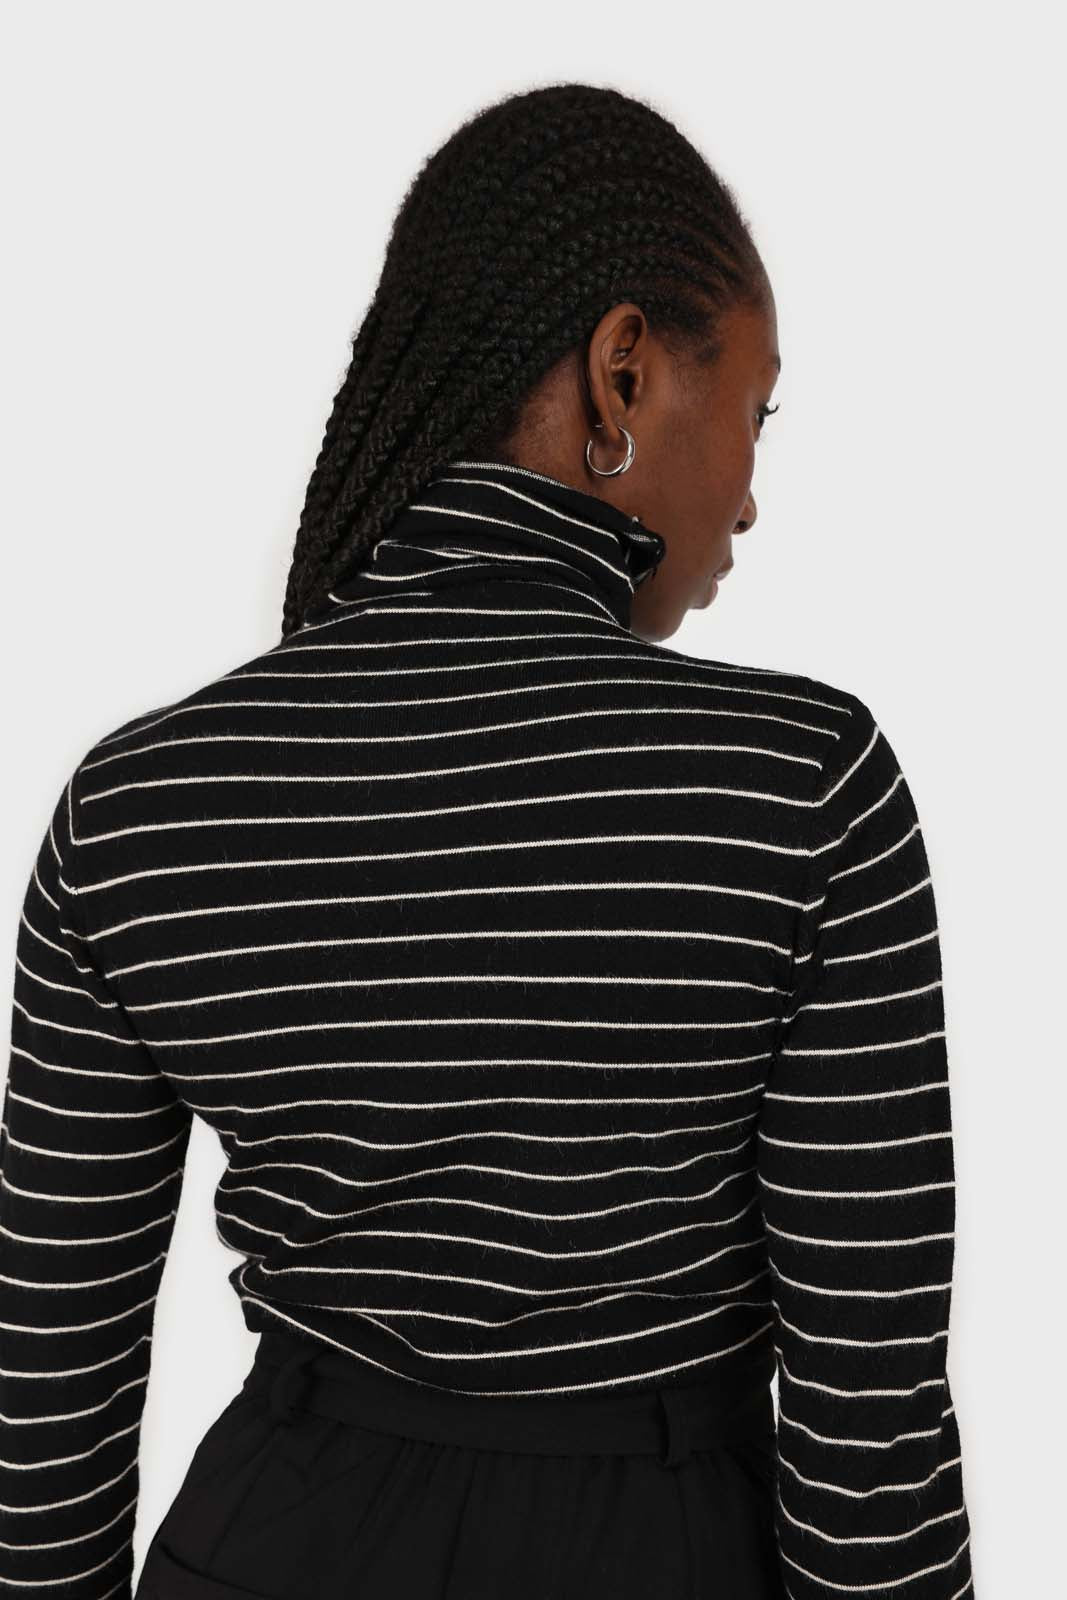 Black and white striped turtleneck long sleeved top 3